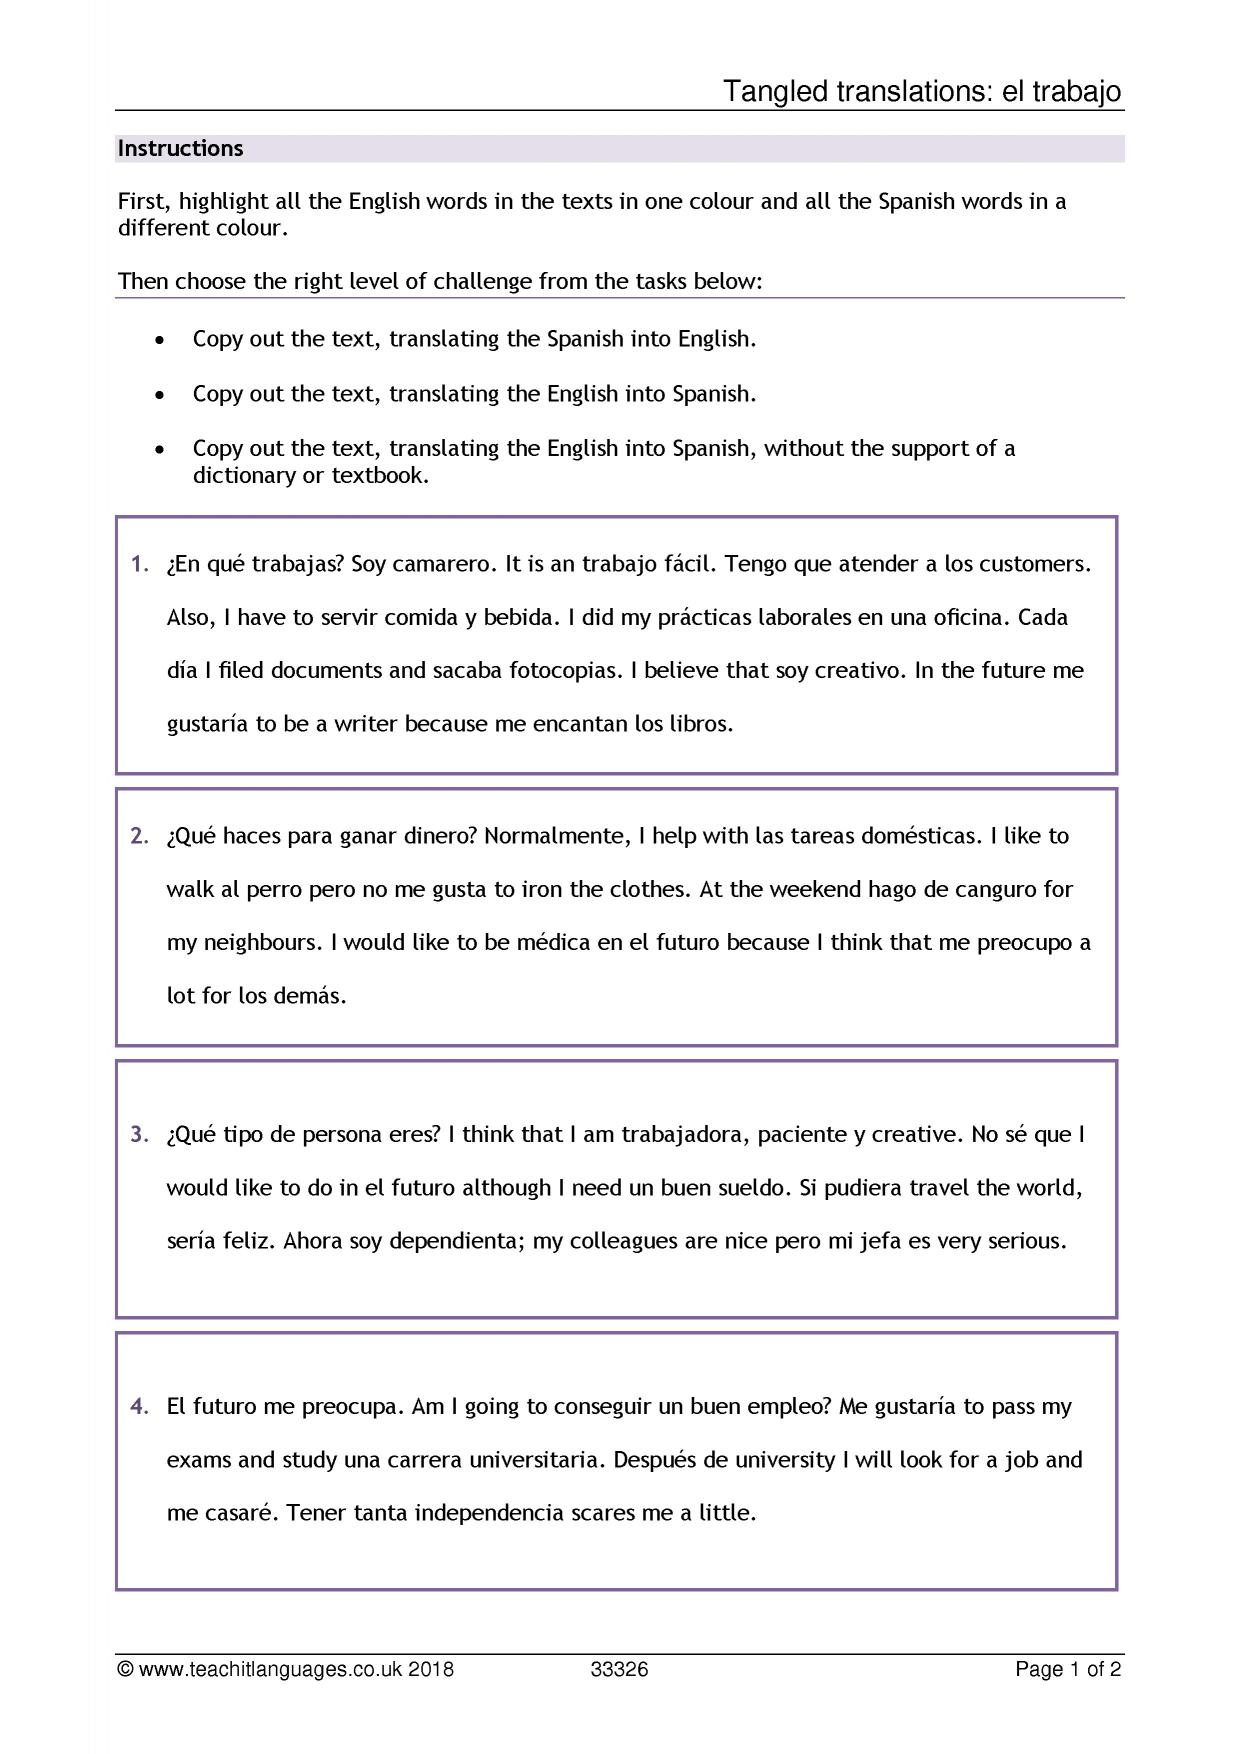 008 X78302 Php Pagespeed Ic 0xojul 6nq Essay Example Translate My Into Remarkable Spanish Full